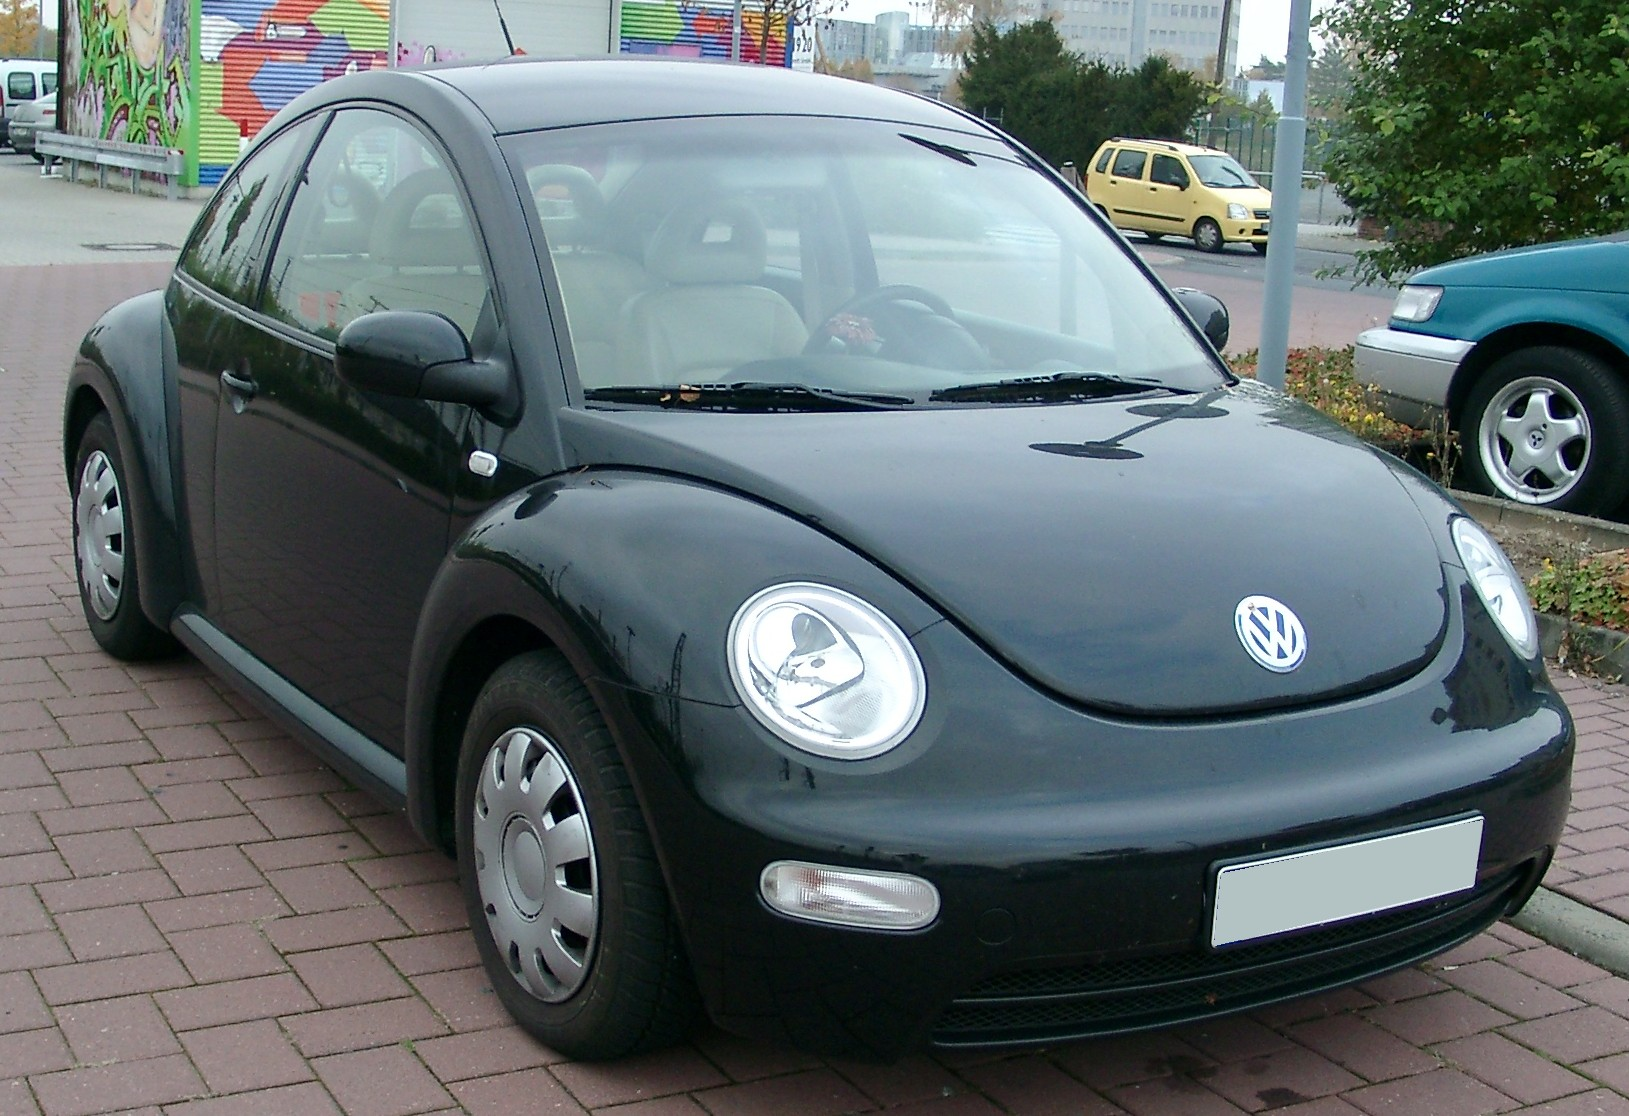 file vw new beetle front wikimedia commons. Black Bedroom Furniture Sets. Home Design Ideas